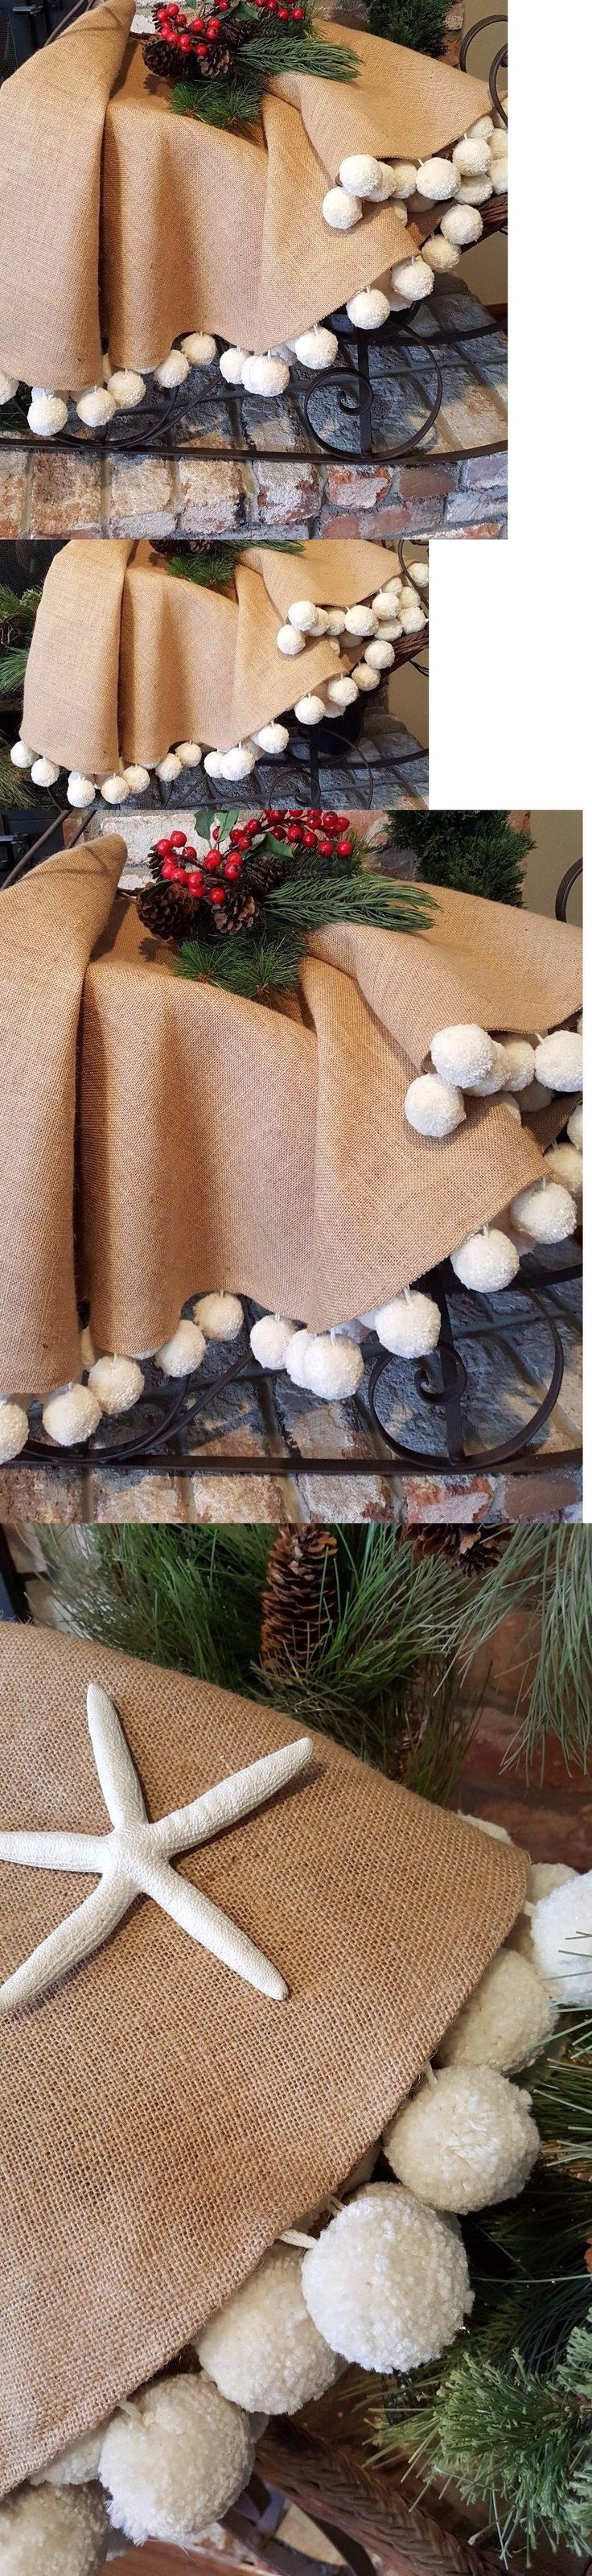 Tree Stands Skirts and Storage 166726: Coastal Style, Farmhouse Christmas , Deluxe Pom Pom Christmas Tree Skirt -> BUY IT NOW ONLY: $155 on eBay!